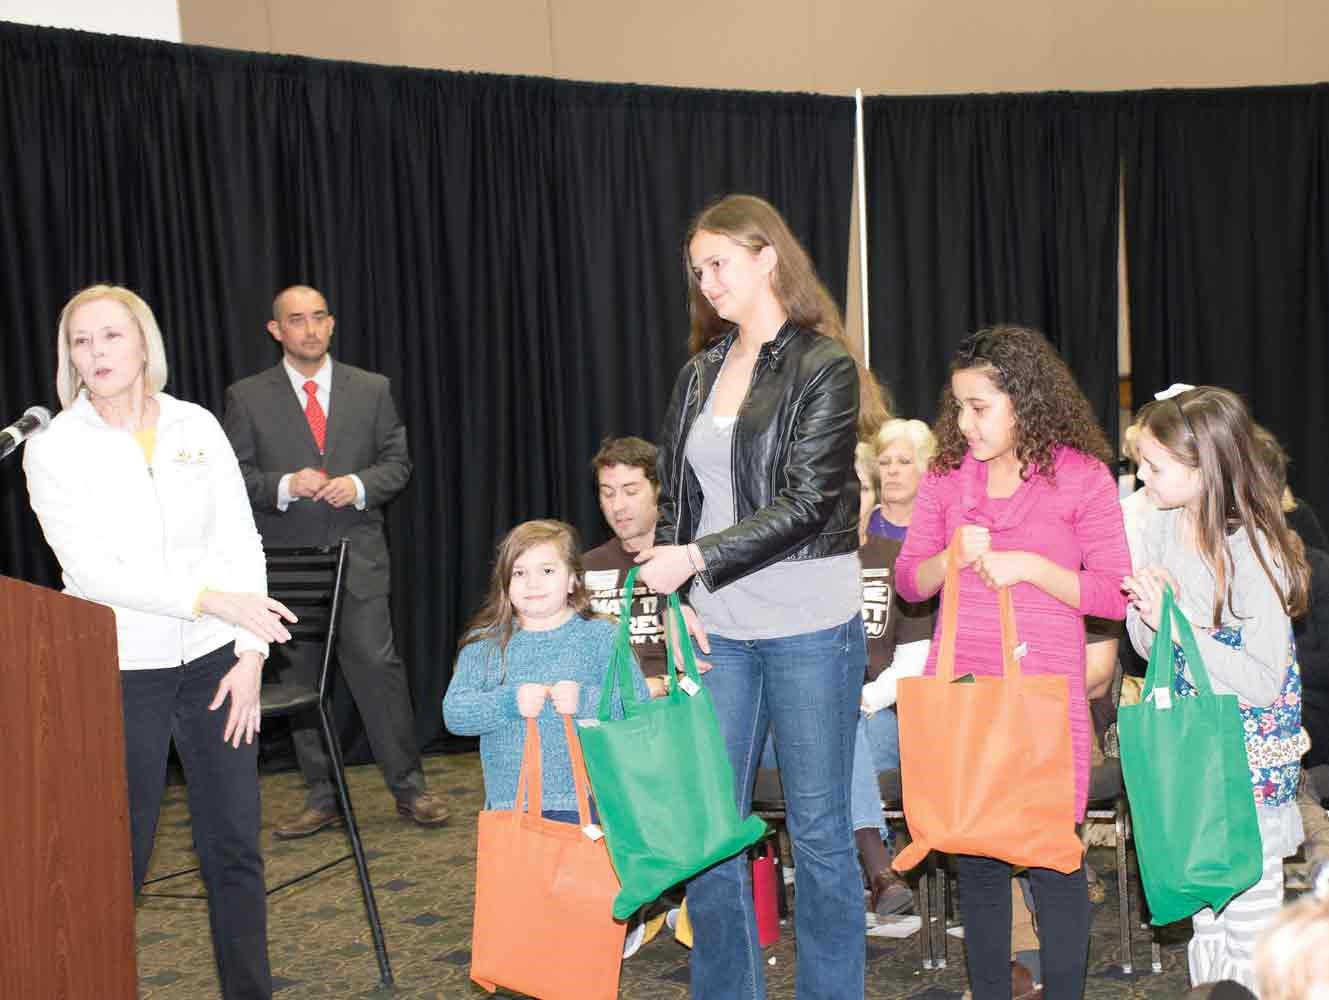 Community Education Director Debi Jordan recognizes four Warren County students for sweeping the event's arts program, in which they created designs for a local attraction's gift shop. From left, the students are Addison Rosado, a Jody Richards Elementary School first-grader; Liz DeMarse, a Drakes Creek Middle School eighth-grader; Harley Wilson, a Lost River Elementary School sixth-grader; and Hayden Wolf, a North Warren Elementary School third-grader. A fifth winner, Bosco Tuyisenge, a Henry F. Moss Middle School eighth-grader, was unable to attend.